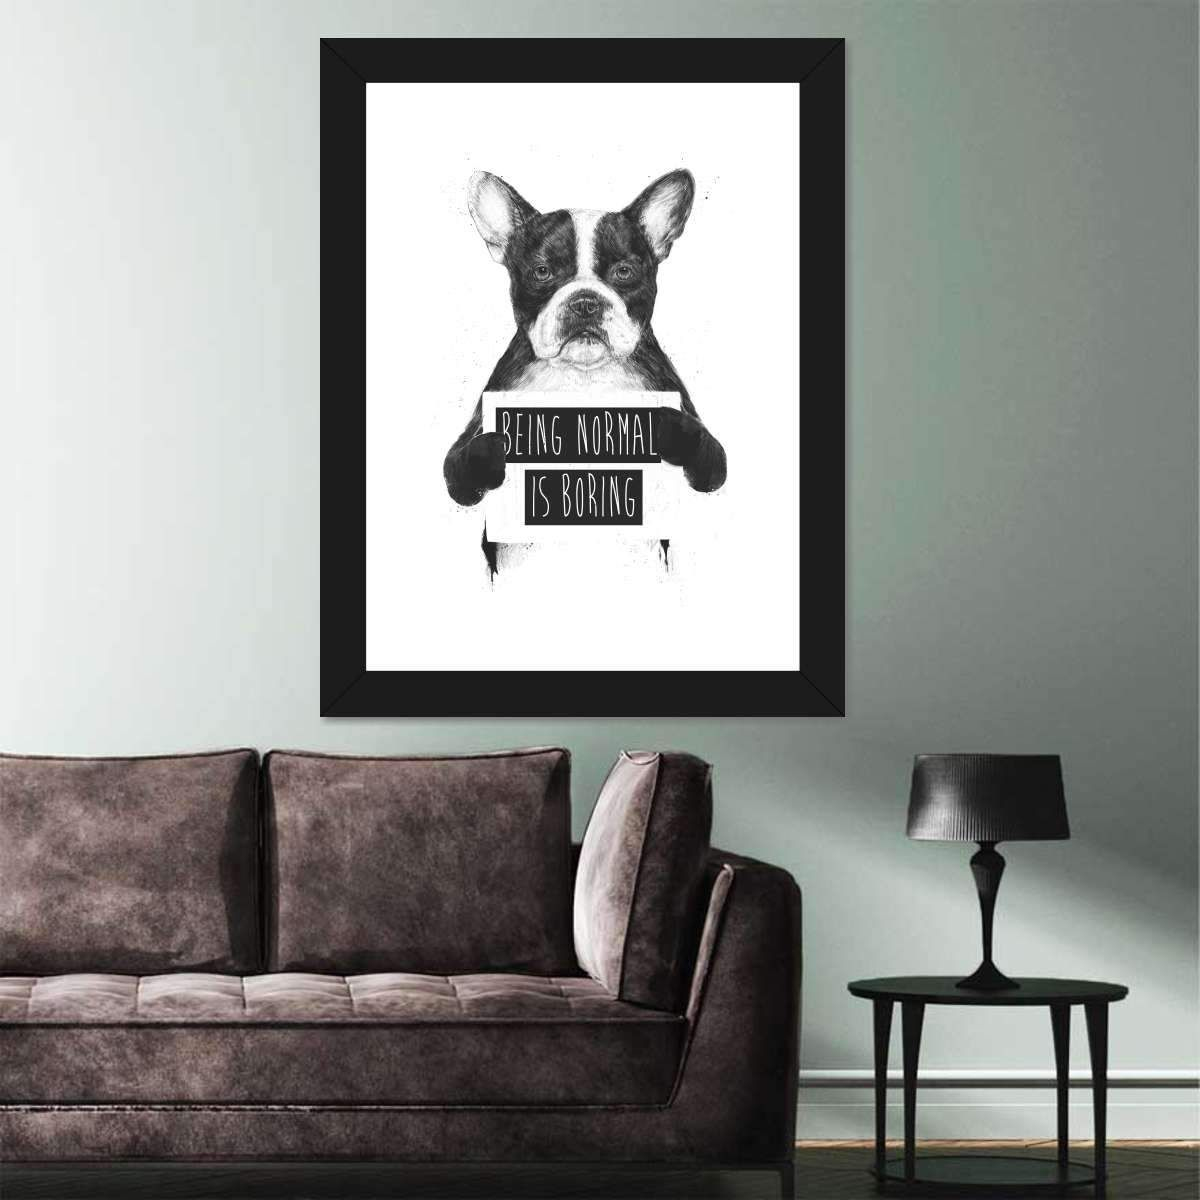 Being Normal Is Boring is here to make your home a lot friendlier! Bring the sweetness of your favorite pet and perfect companion into your home and express your love for these lovely creatures. Woof-woof!